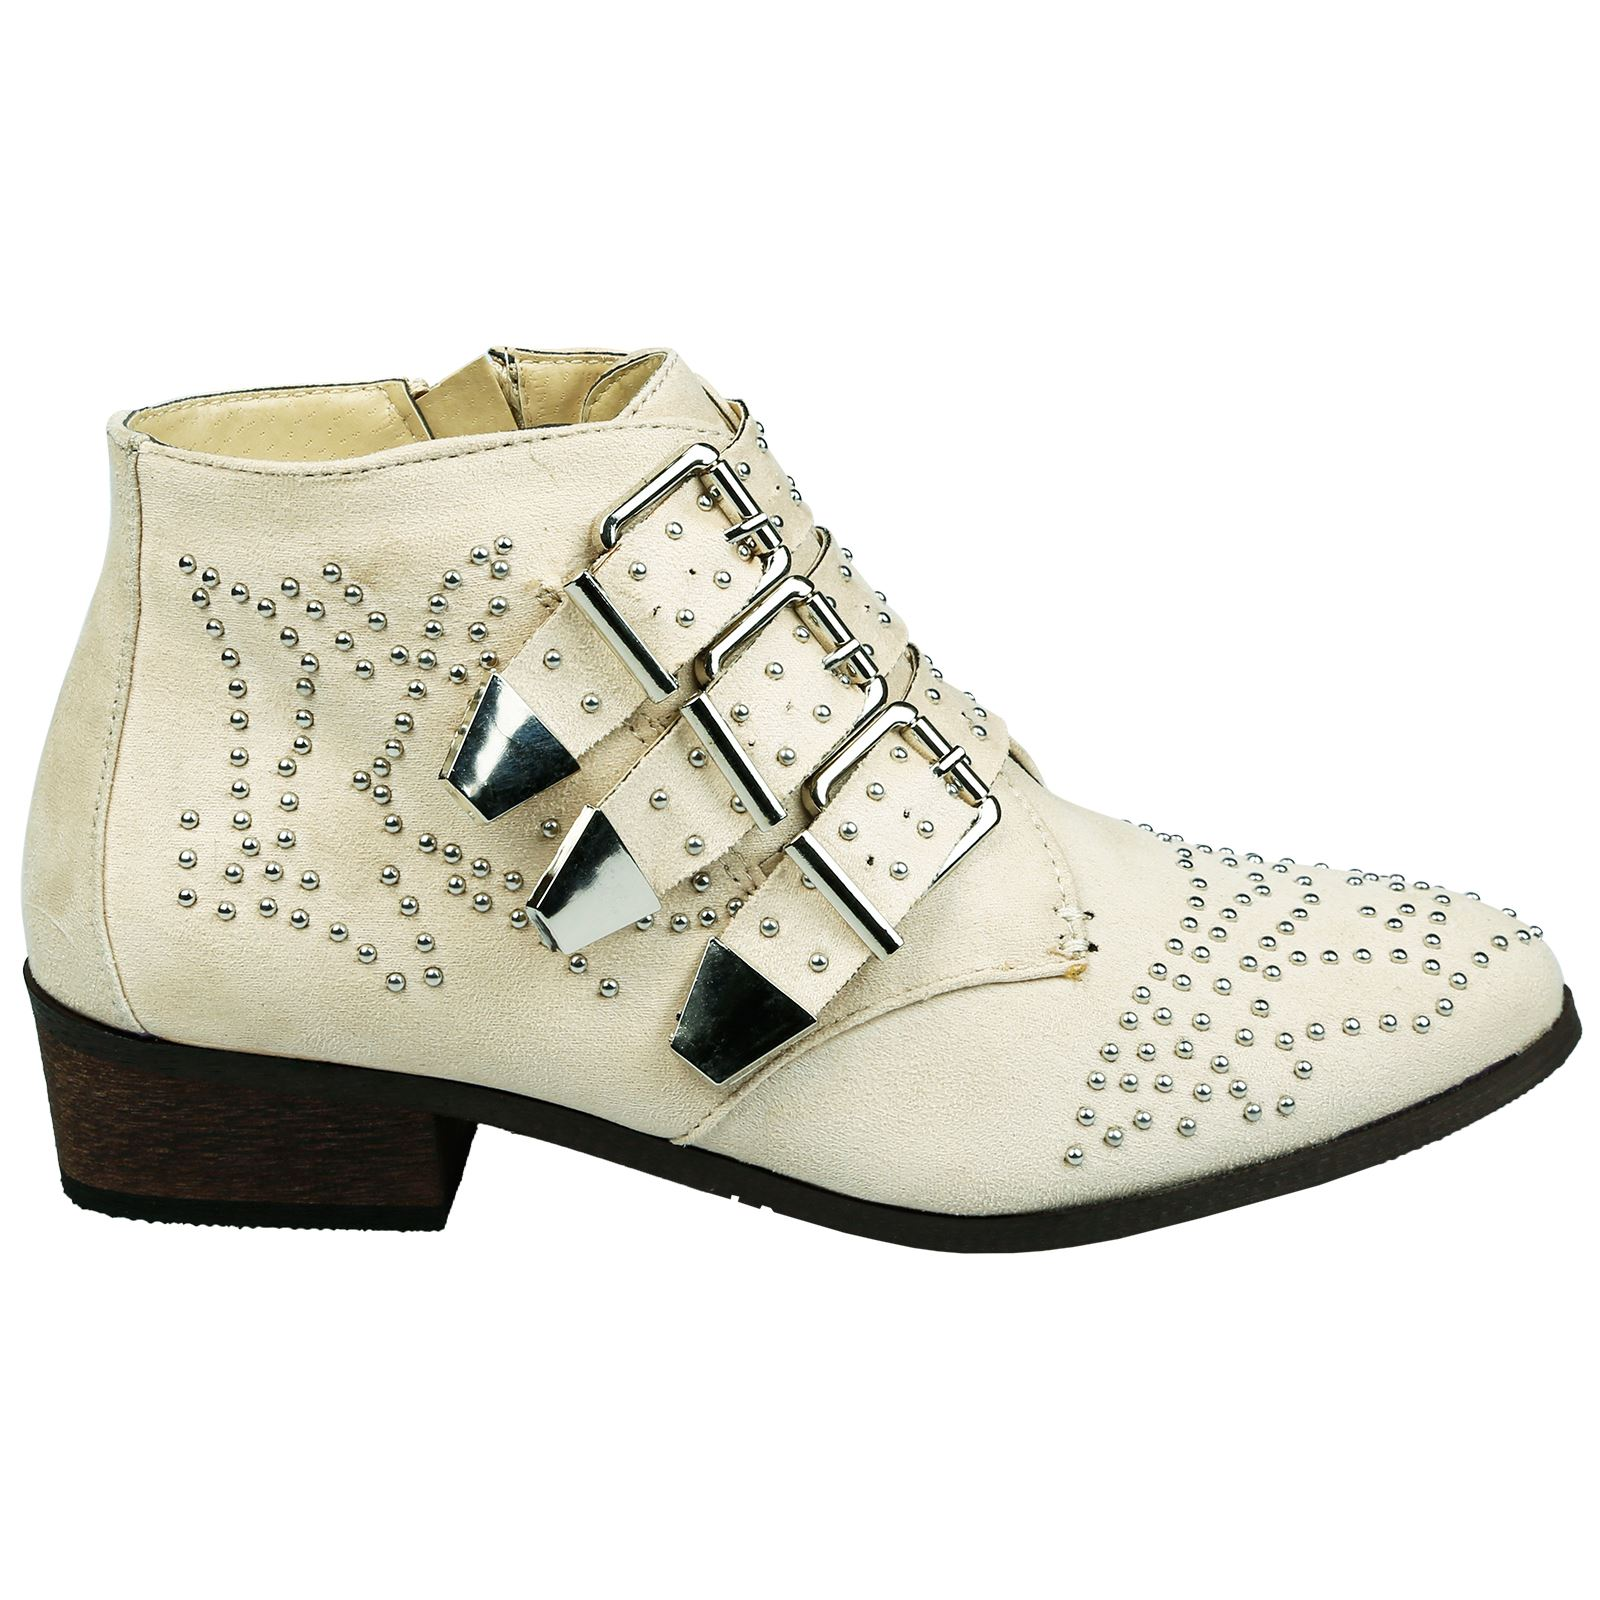 Liv-Womens-Flats-Low-Heels-Buckle-Strappy-Biker-Ankle-Boots-Ladies-Shoes-Studded thumbnail 3